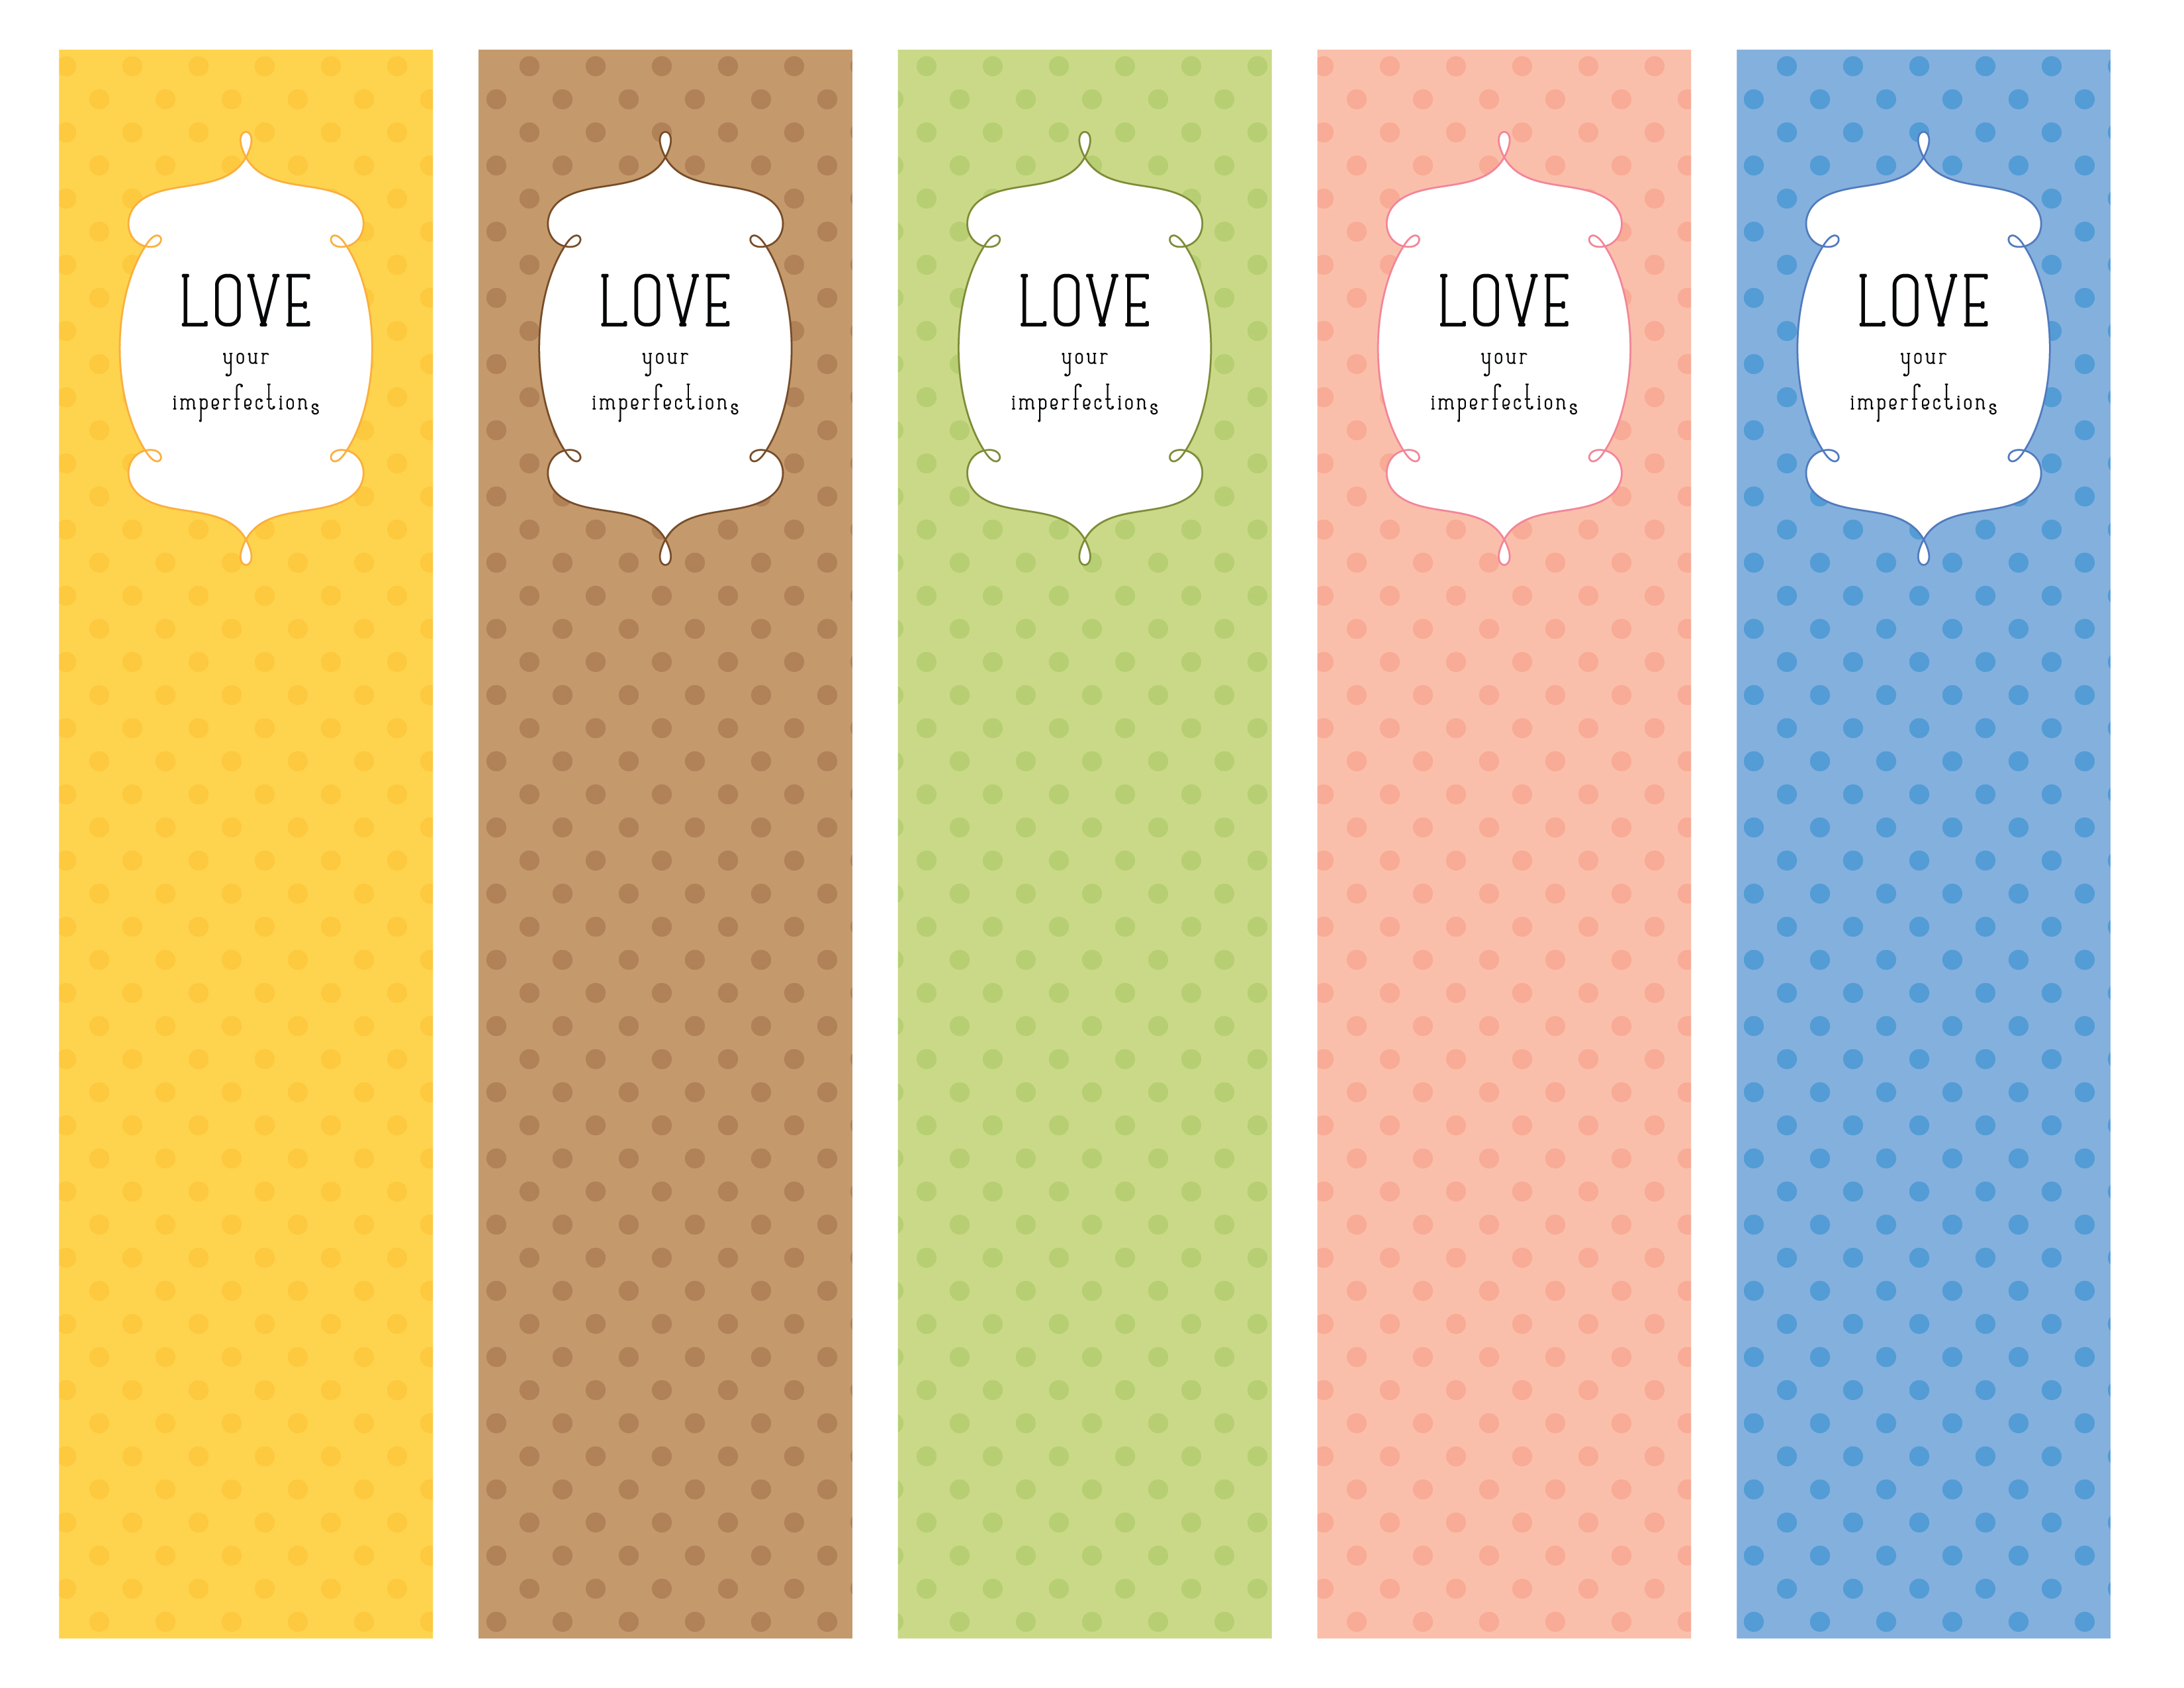 6 Images of Love Printable Bookmarks